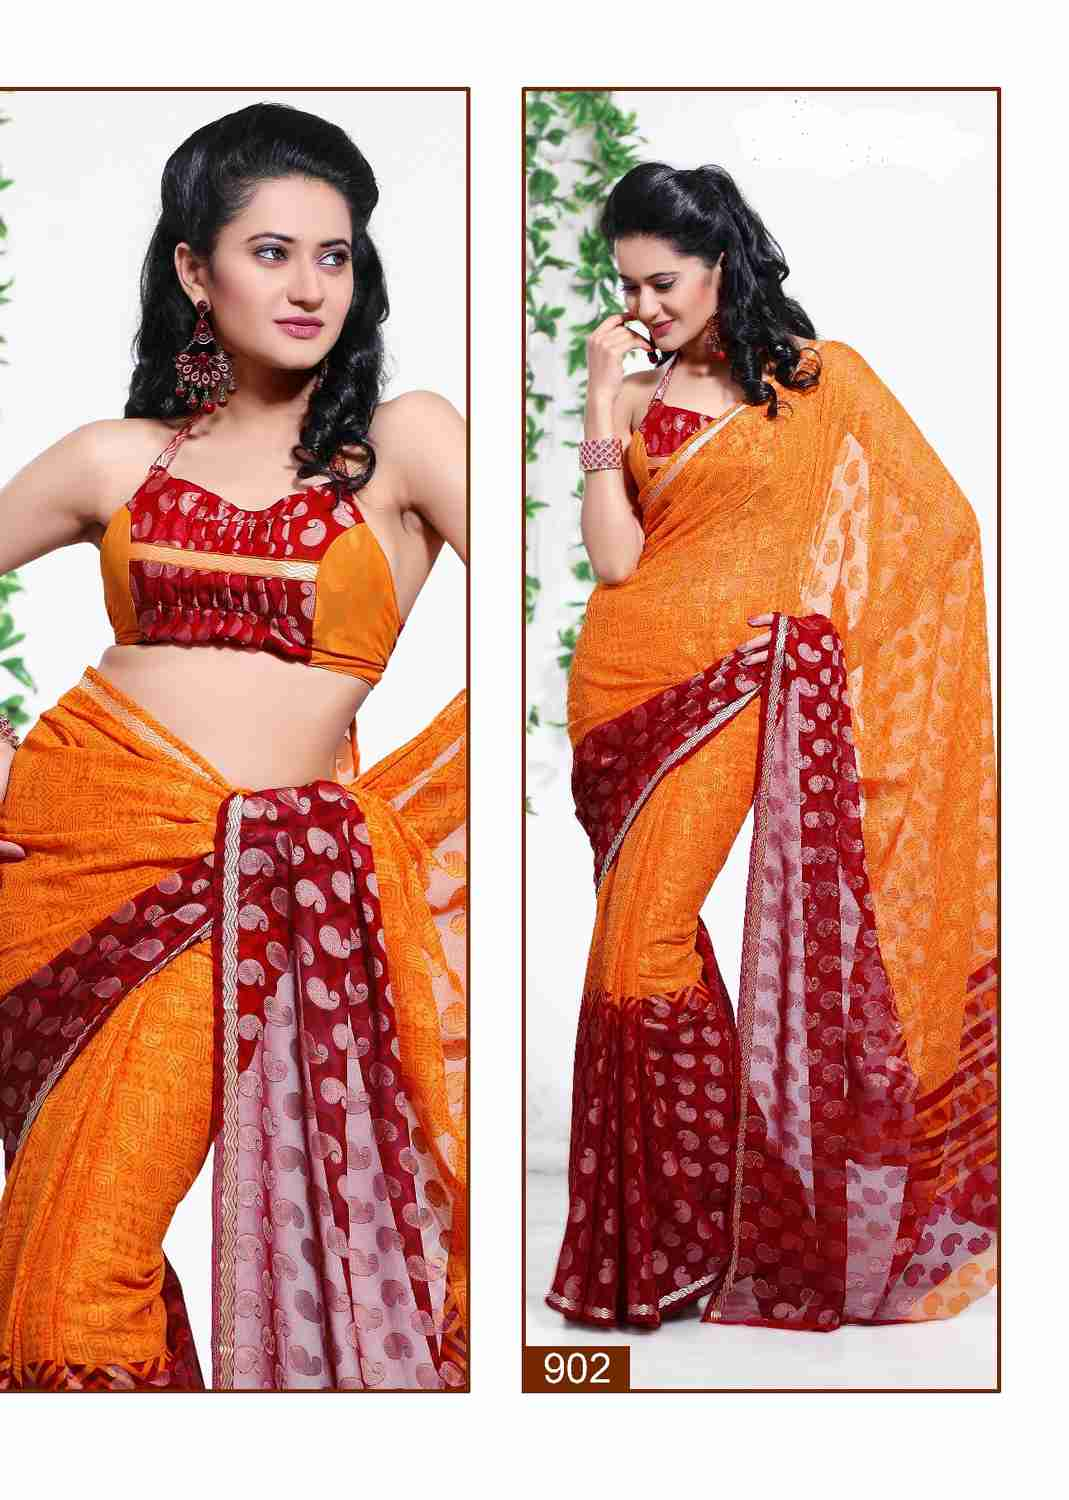 Indian Selections Bhumika Georgette Indian Sari saree Fabric Bellydance at Sears.com